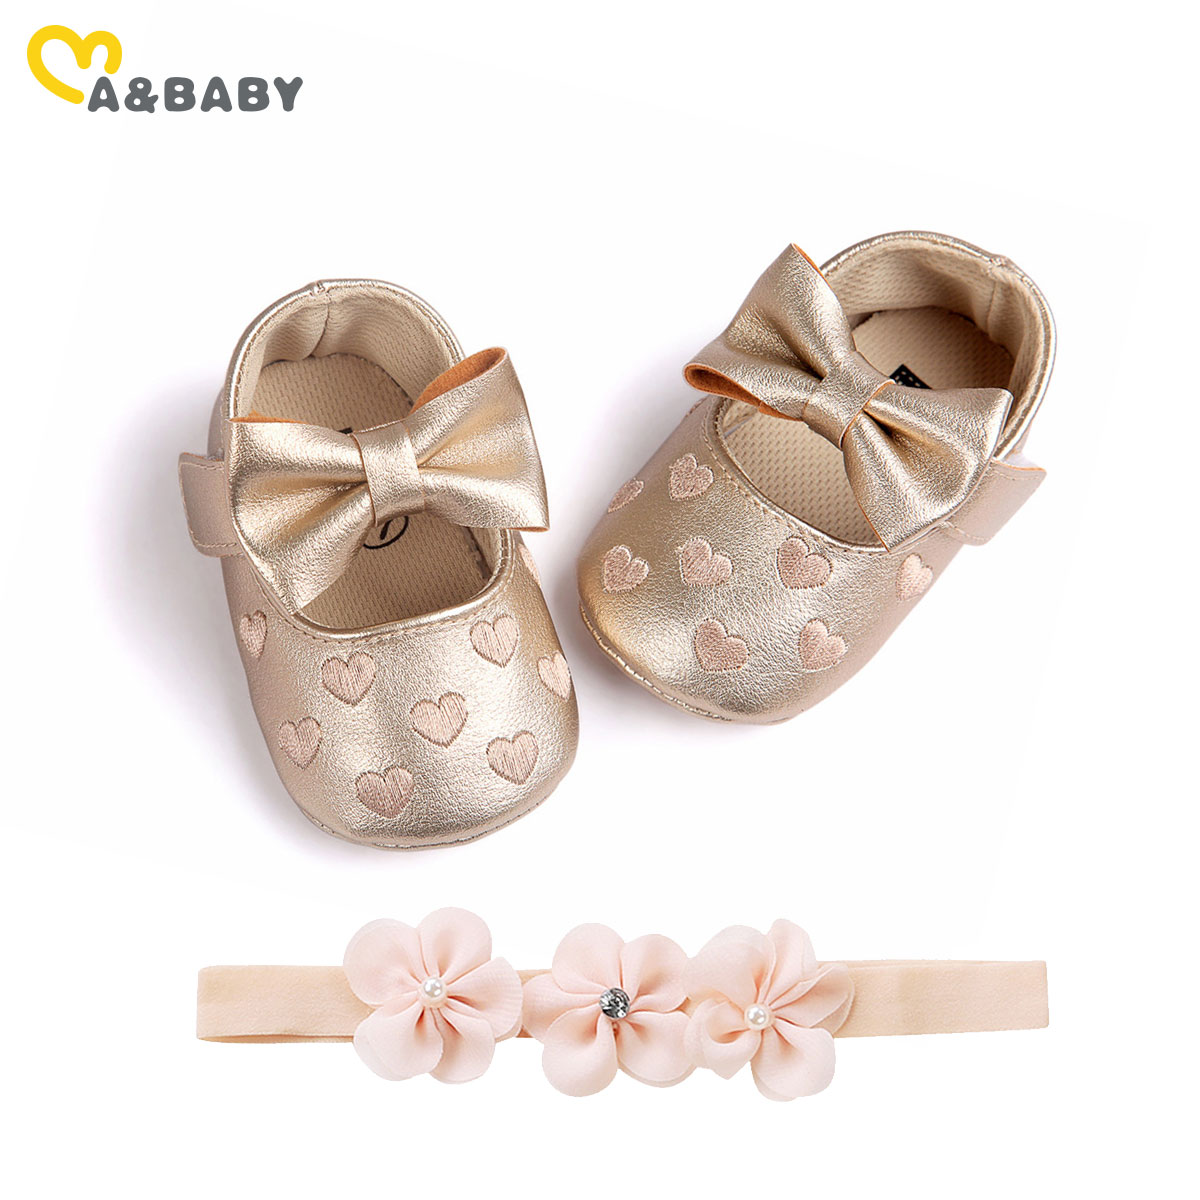 Ma&Baby 0-18M Newborn Infant Baby Girls Bow Shoes Princess Pu Leather Birthday Party Shoes Soft Crib Shoes